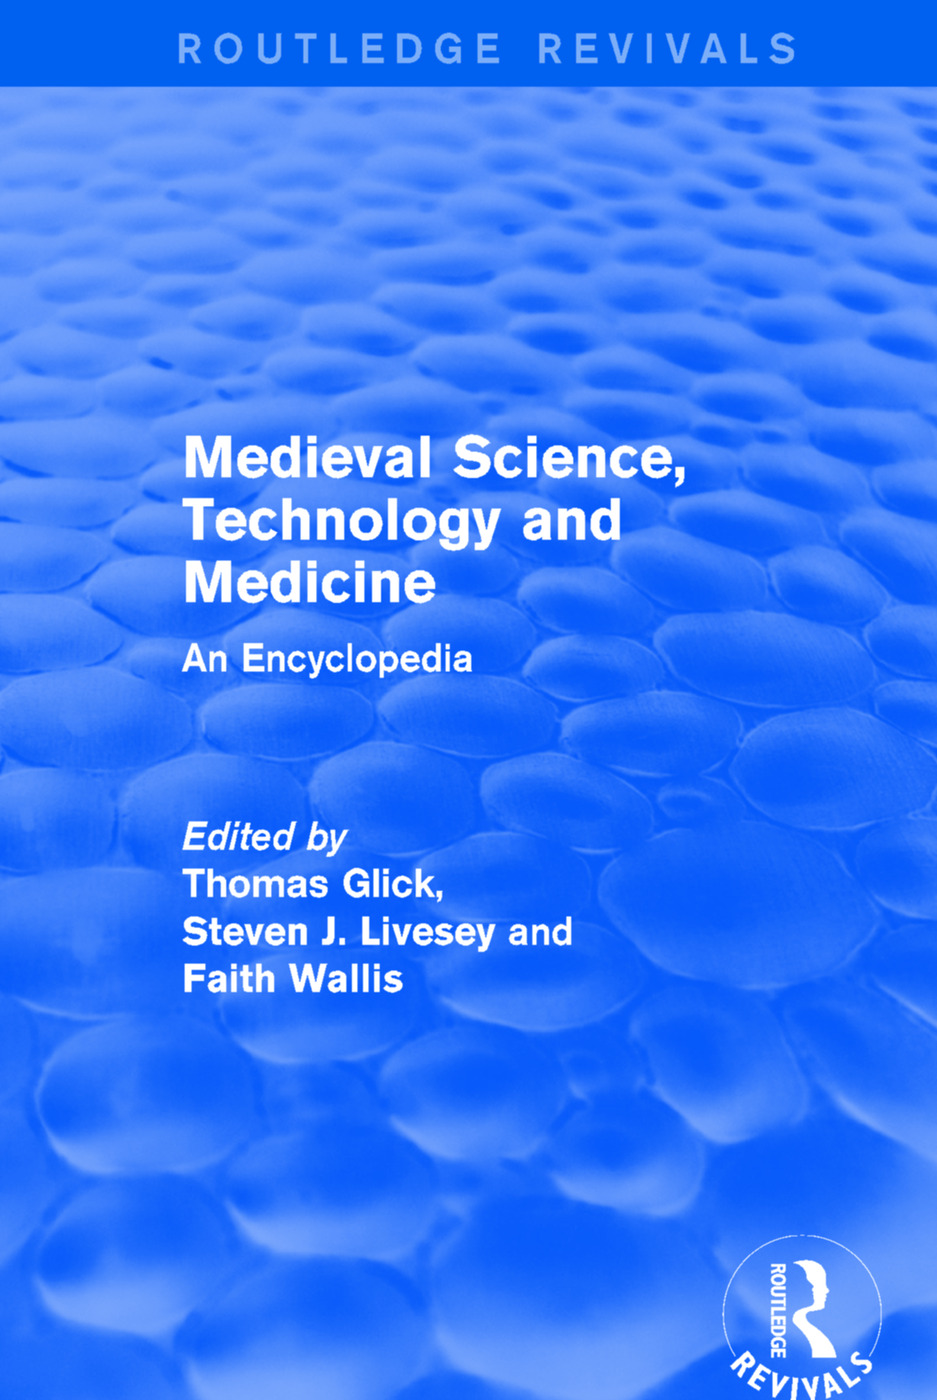 Routledge Revivals: Medieval Science, Technology and Medicine (2006): An Encyclopedia book cover